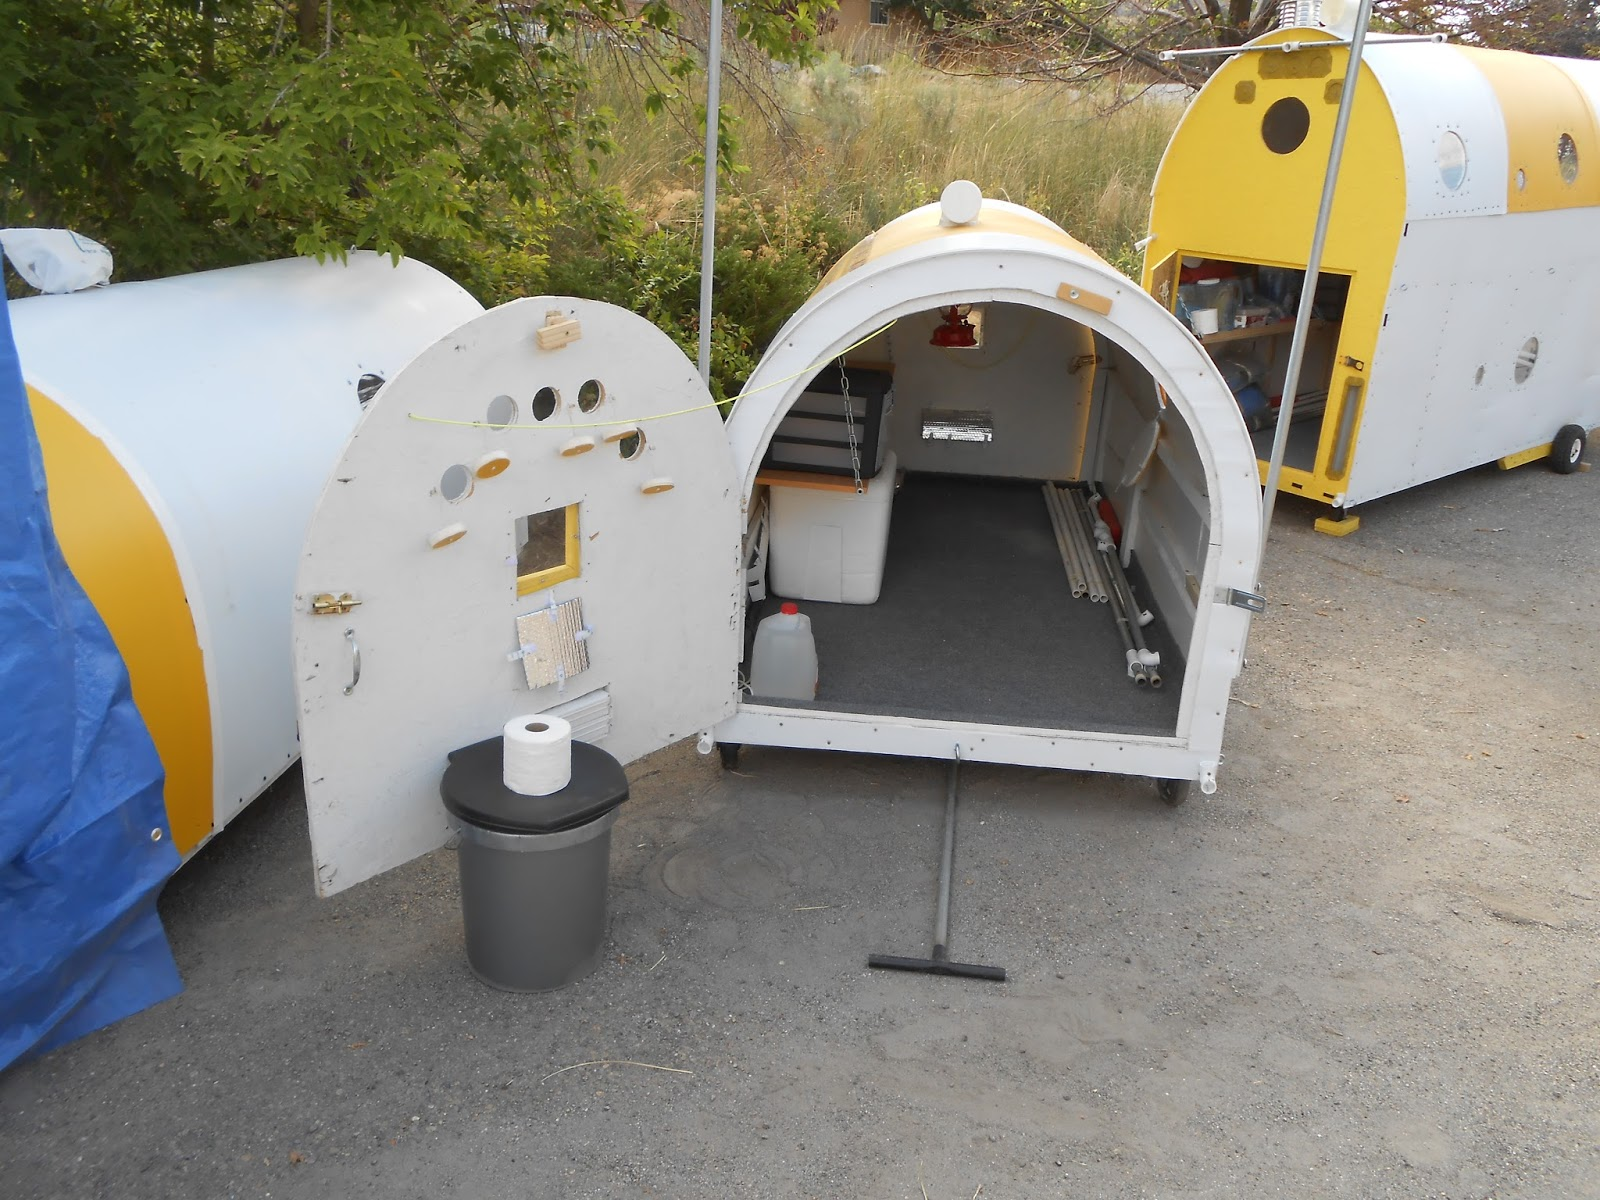 Temporary Shelters Survival : Pix grove survival pods for homeless